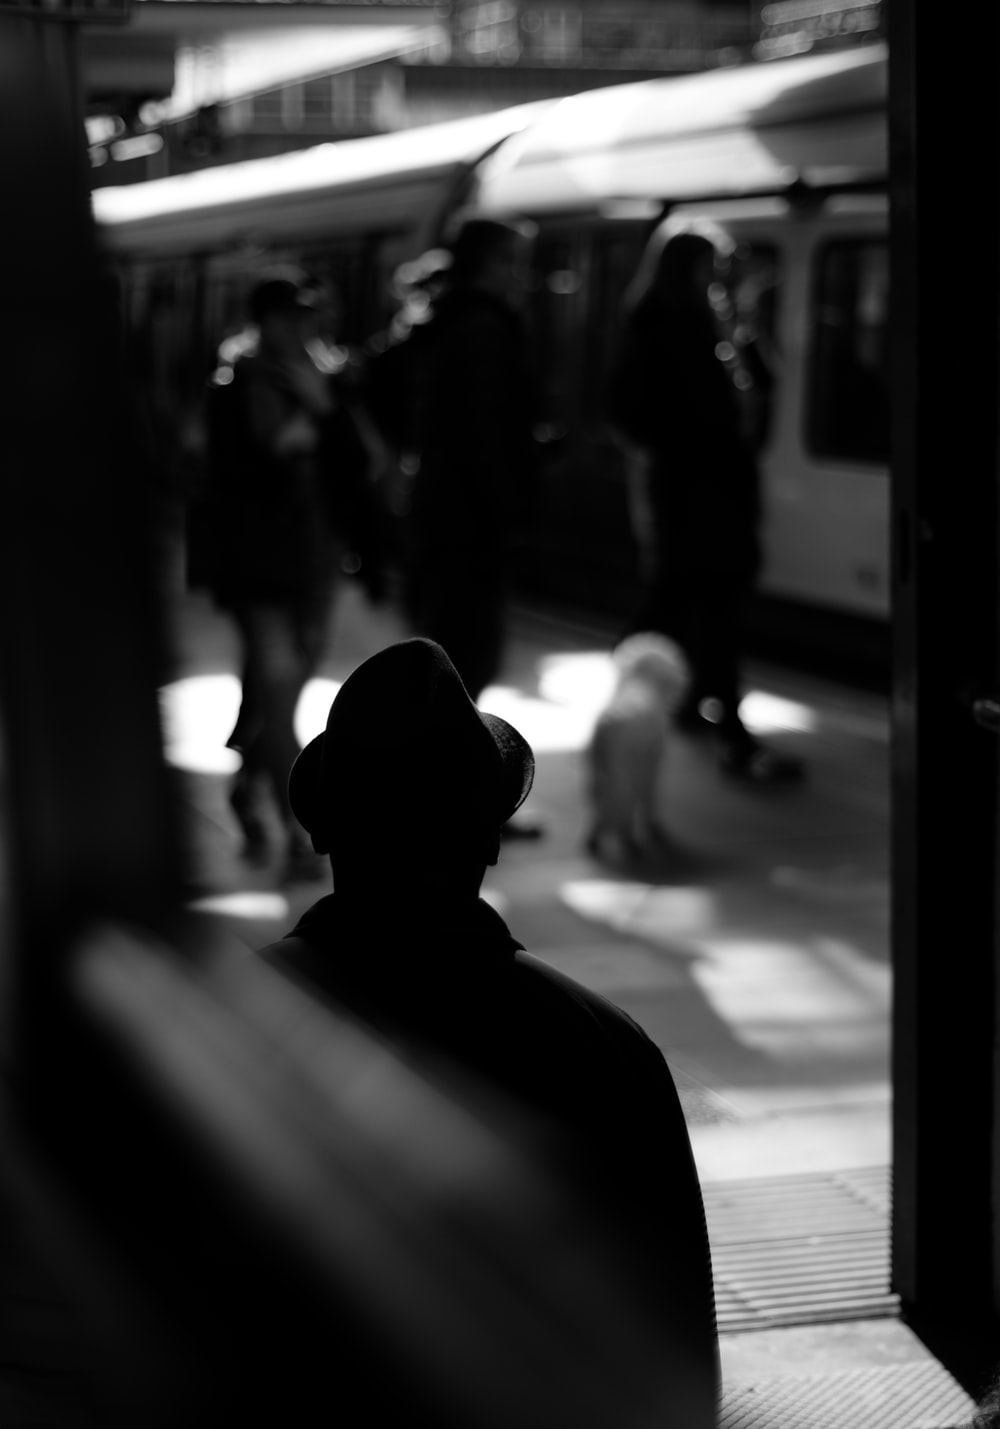 grayscale photo of person standing on train station